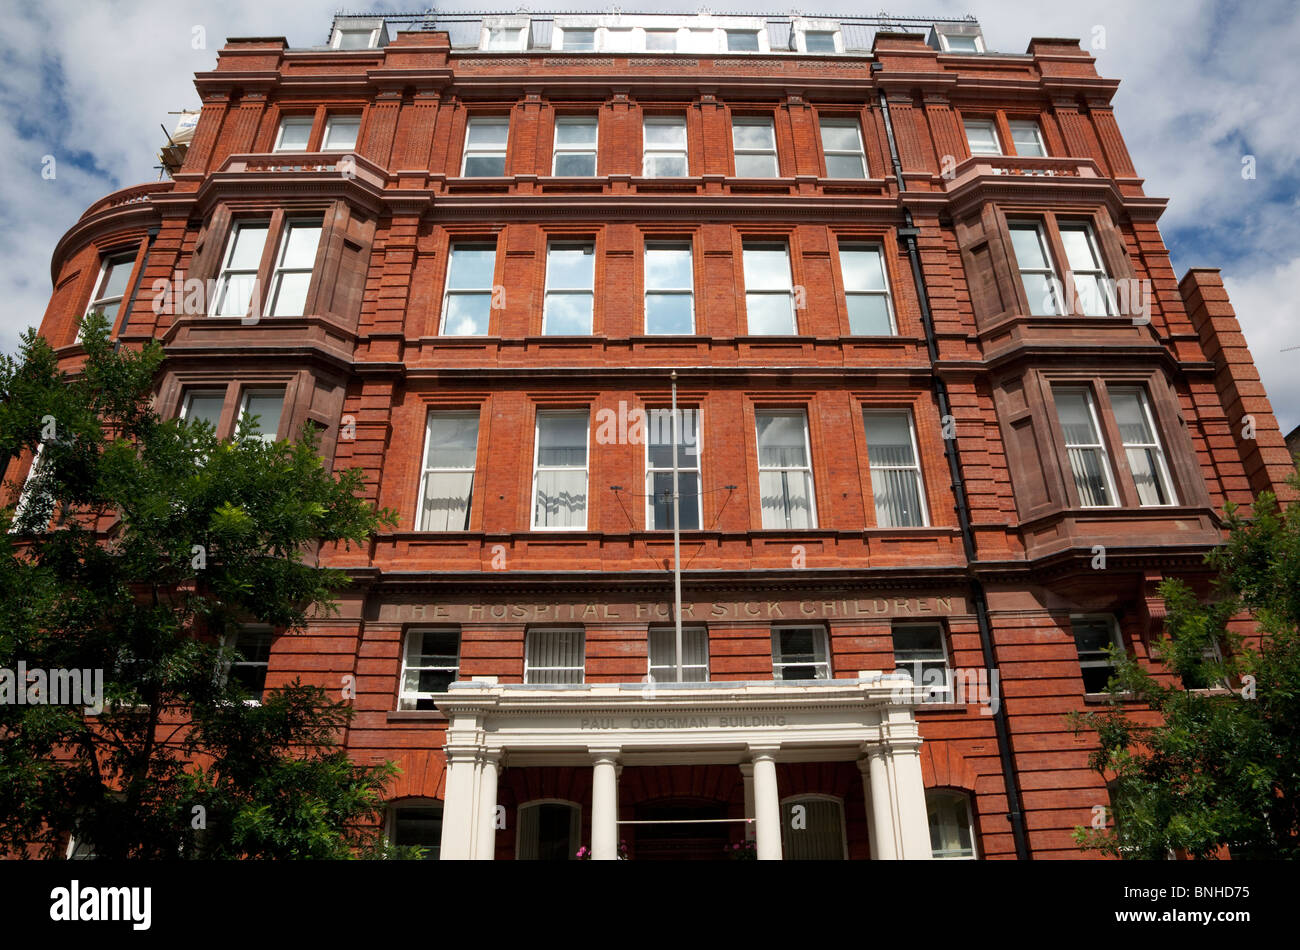 Great Ormond Street Hospital for Sick Children, London - Stock Image